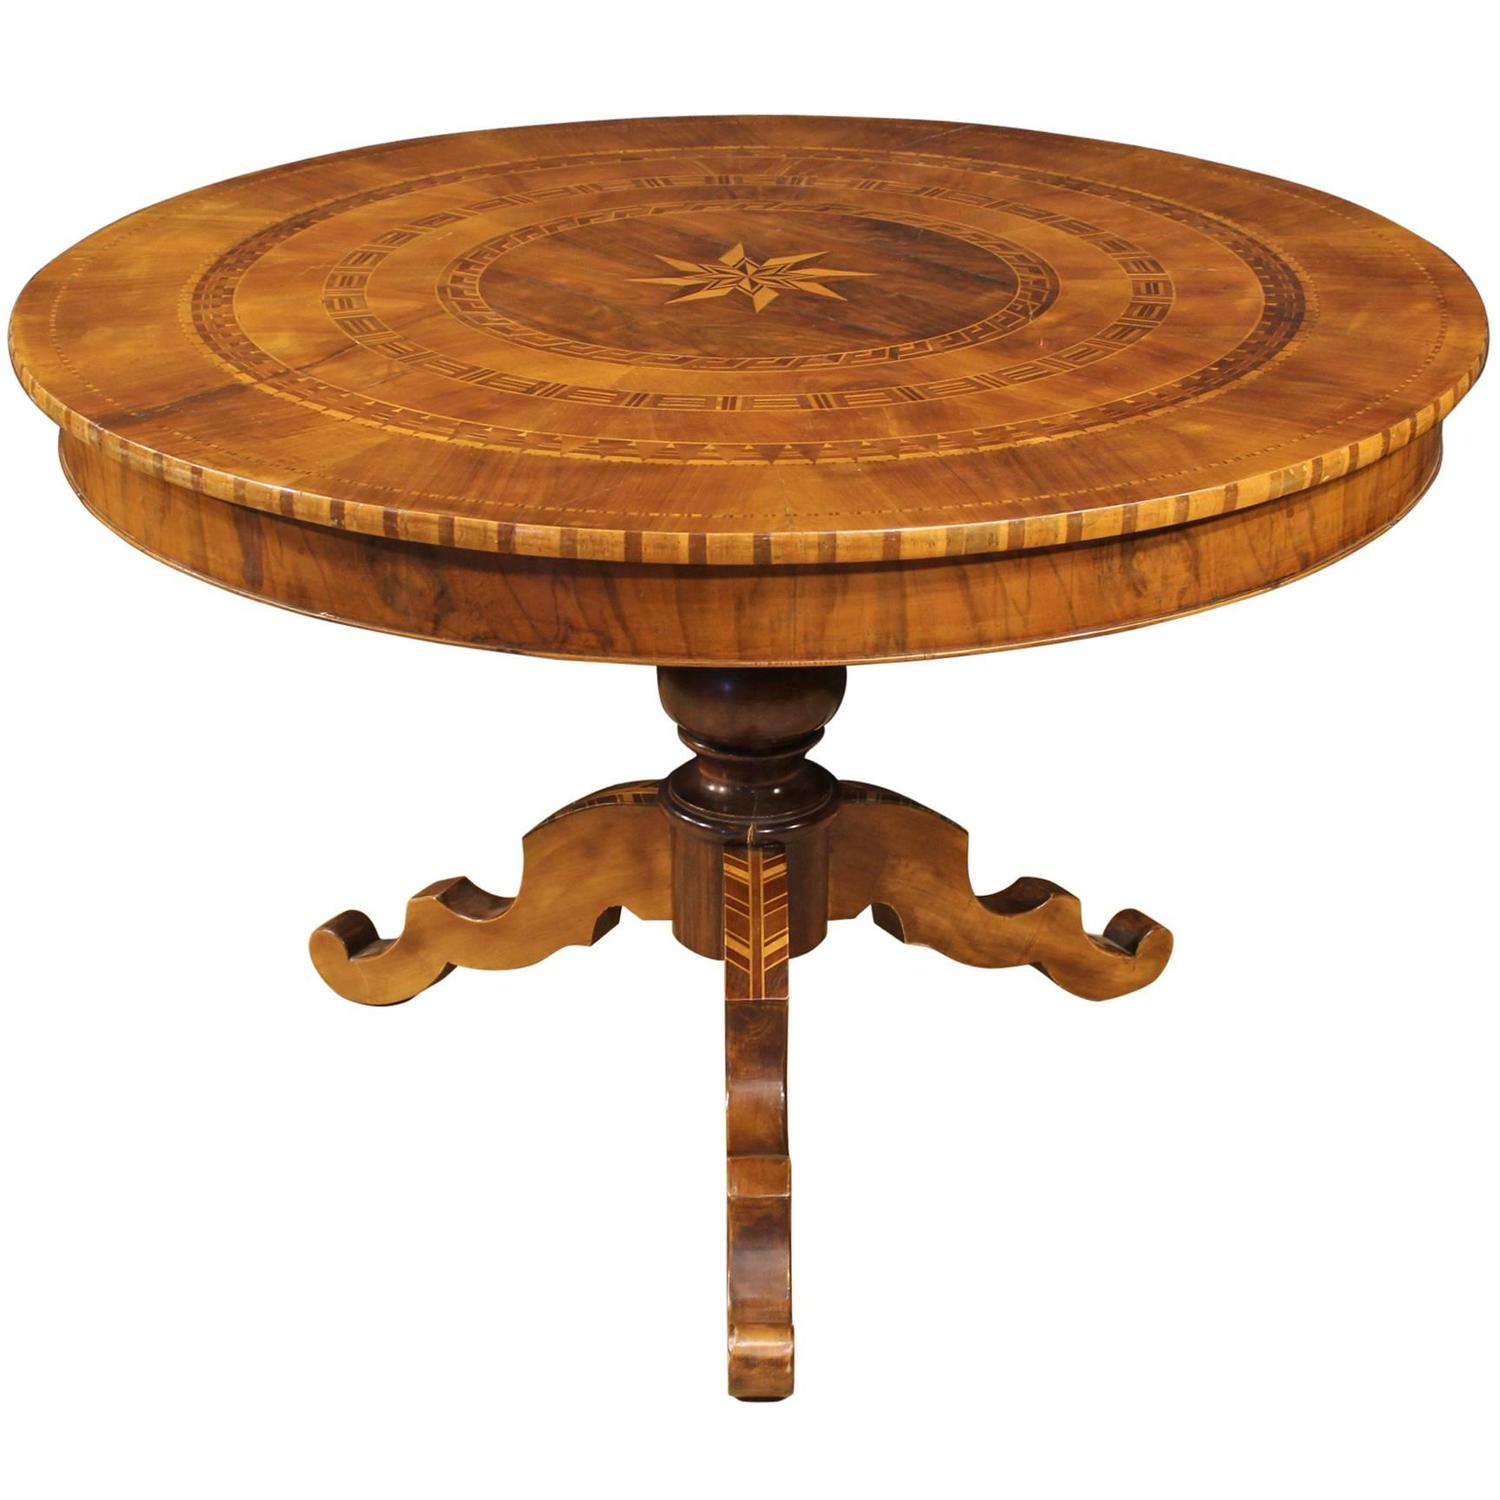 Th century inlaid wood table with geometric decorations